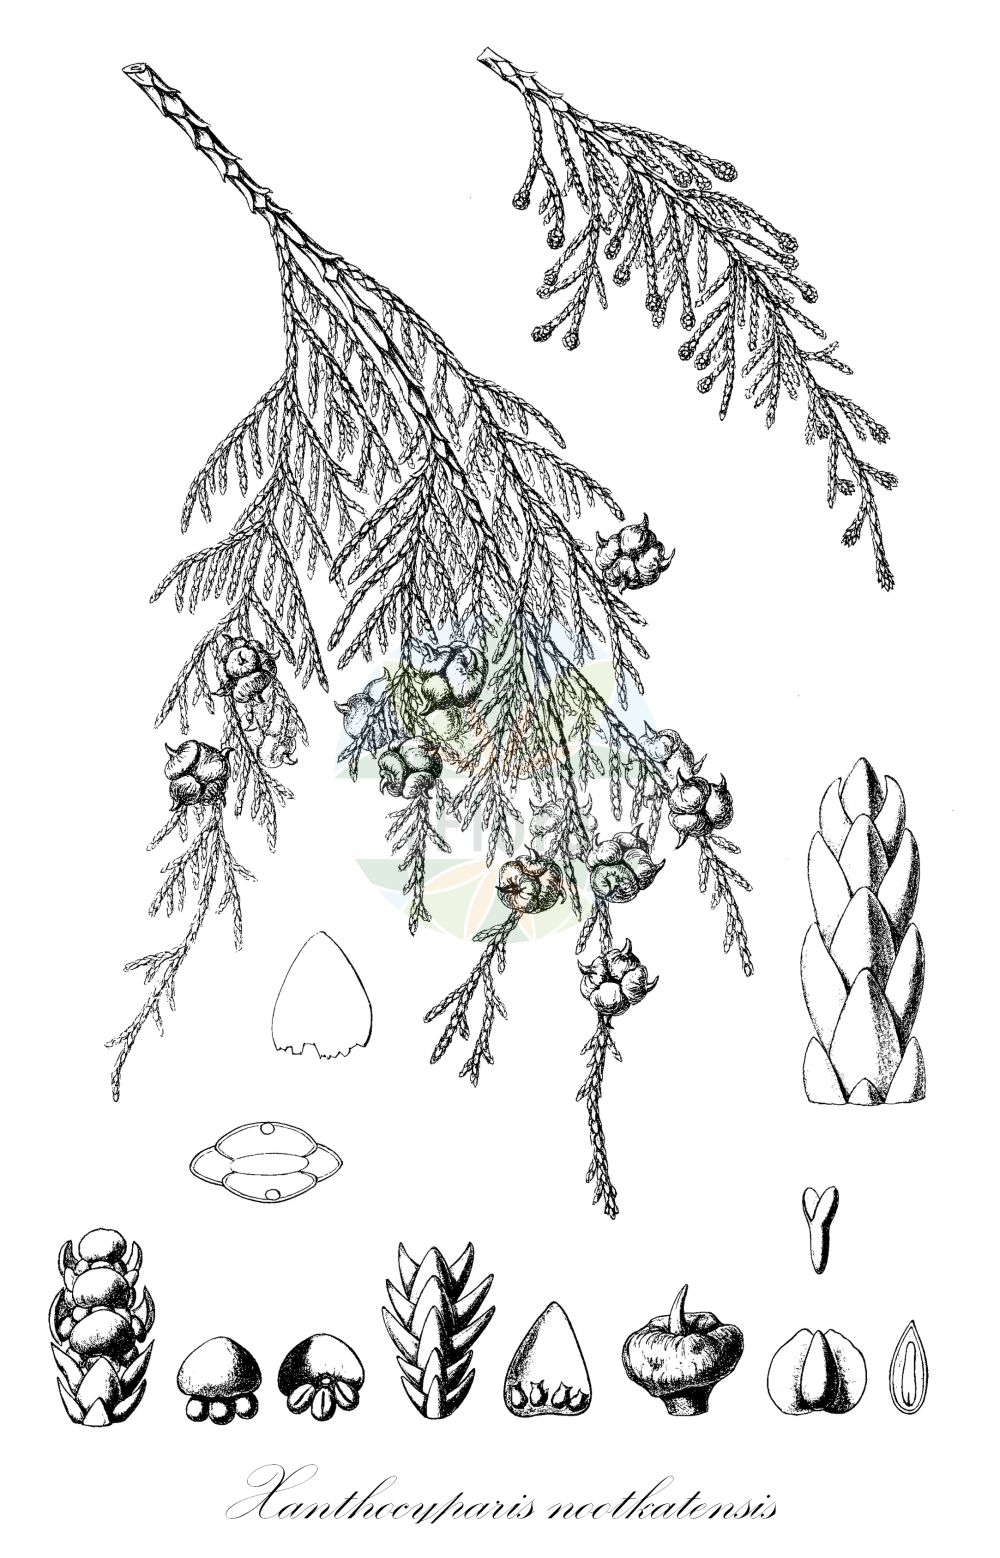 Historische Abbildung von Xanthocyparis nootkatensis (Nootka-Scheinzypresse - Nootka Cypress). Das Bild zeigt Blatt, Bluete, Frucht und Same. ---- Historical Drawing of Xanthocyparis nootkatensis (Nootka-Scheinzypresse - Nootka Cypress).The image is showing leaf, flower, fruit and seed.(Xanthocyparis nootkatensis,Nootka-Scheinzypresse,Nootka Cypress,Chamaecyparis nootkatensis,Cupressus nootkatensis,,Alaska Cypress,Alaska Yellow Cedar,Nootka False Cypress,Yellow Cypress,Xanthocyparis,Cupressaceae,Zypressengewaechse,Cypress family,Blatt,Bluete,Frucht,Same,leaf,flower,fruit,seed,Sargent (1898-1902))